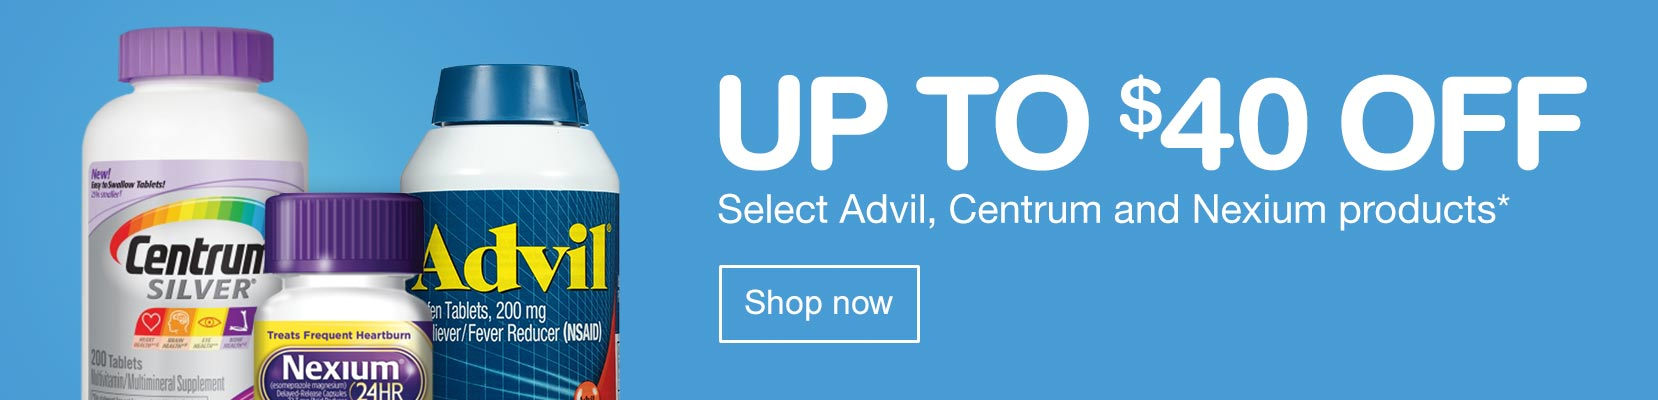 Up to $40 off Select Advil, Centrum and Nexium products.* Shop Now.